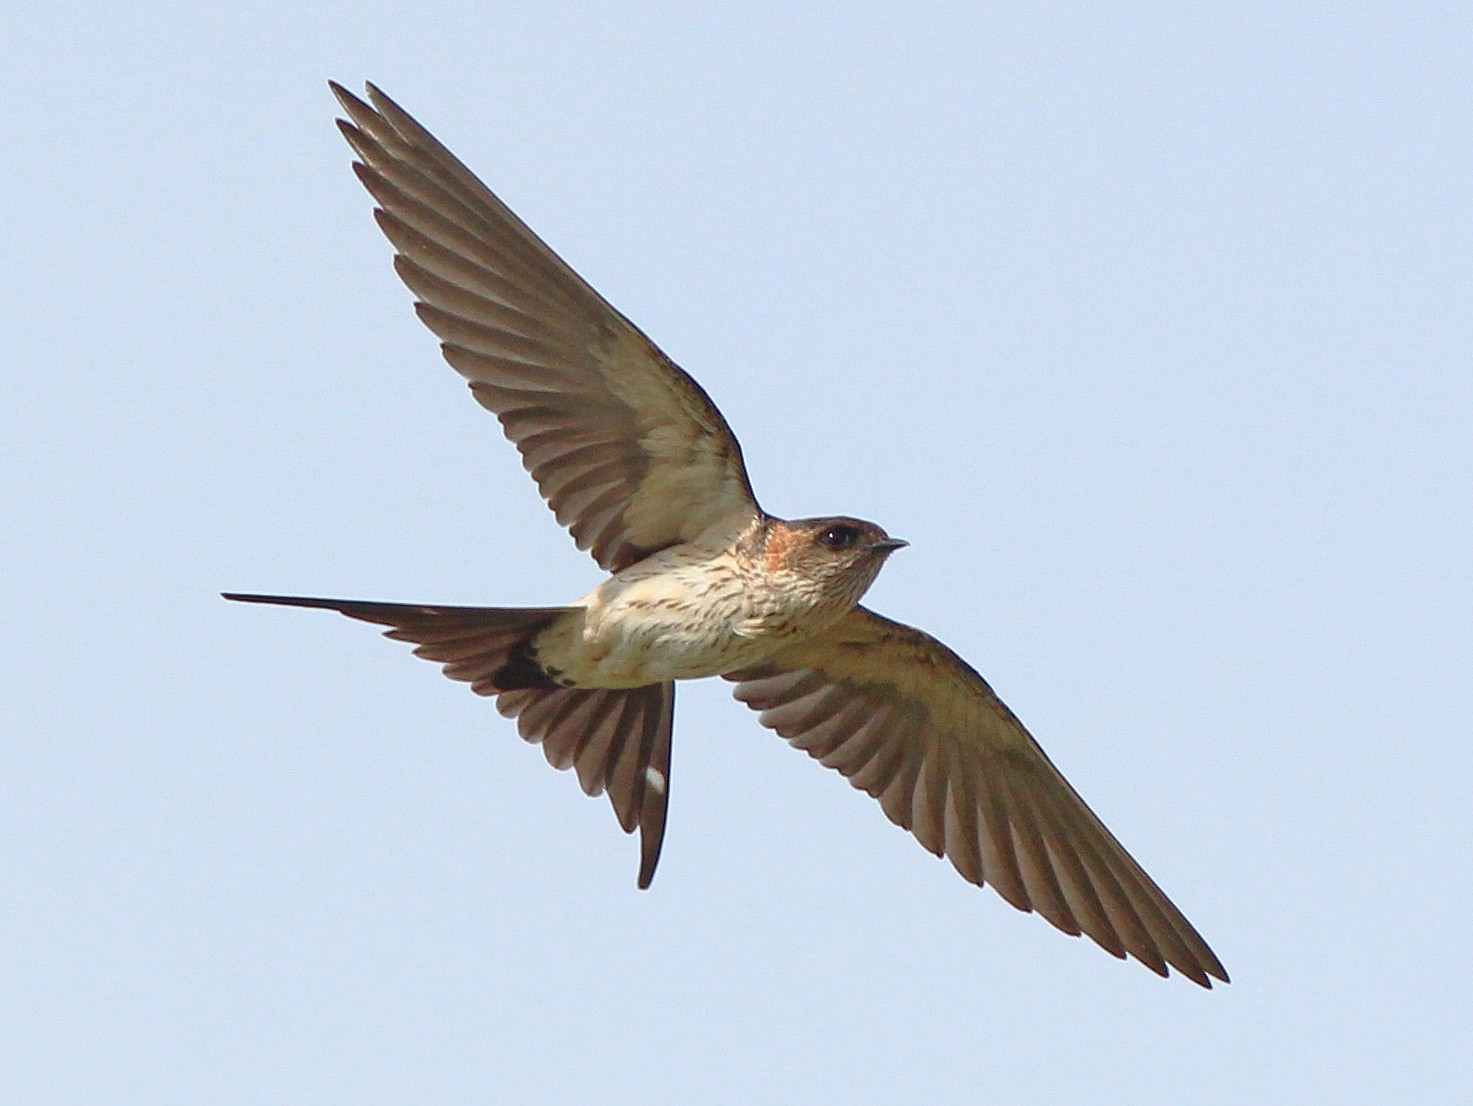 Red-rumped Swallow - Neoh Hor Kee